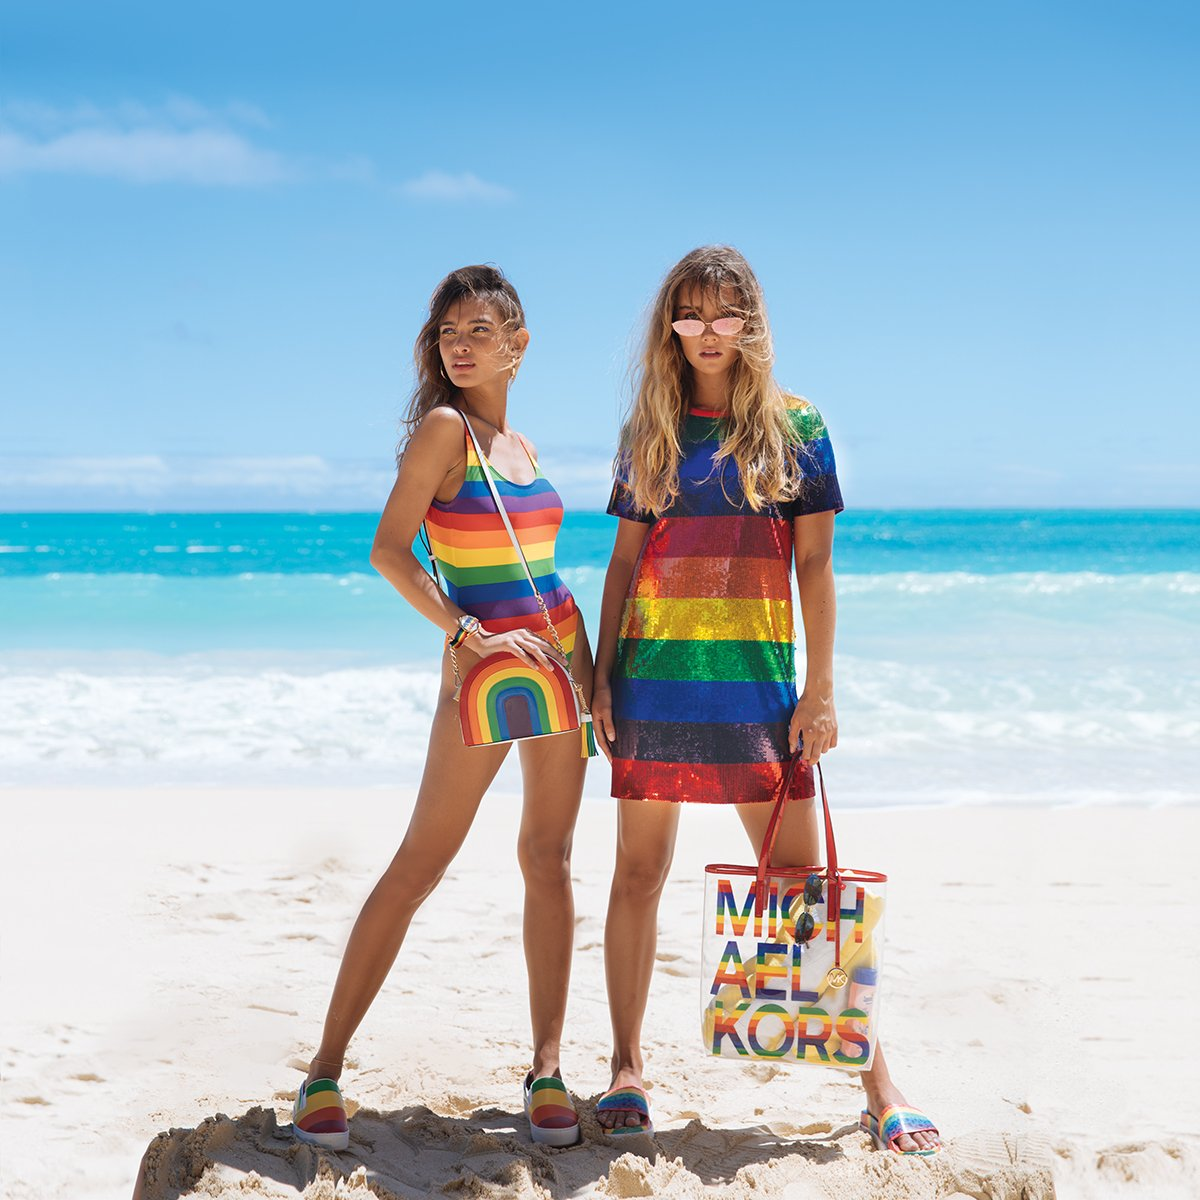 Michael Kors Celebrates Pride Month With the #MKGO Rainbow Capsule  Collection